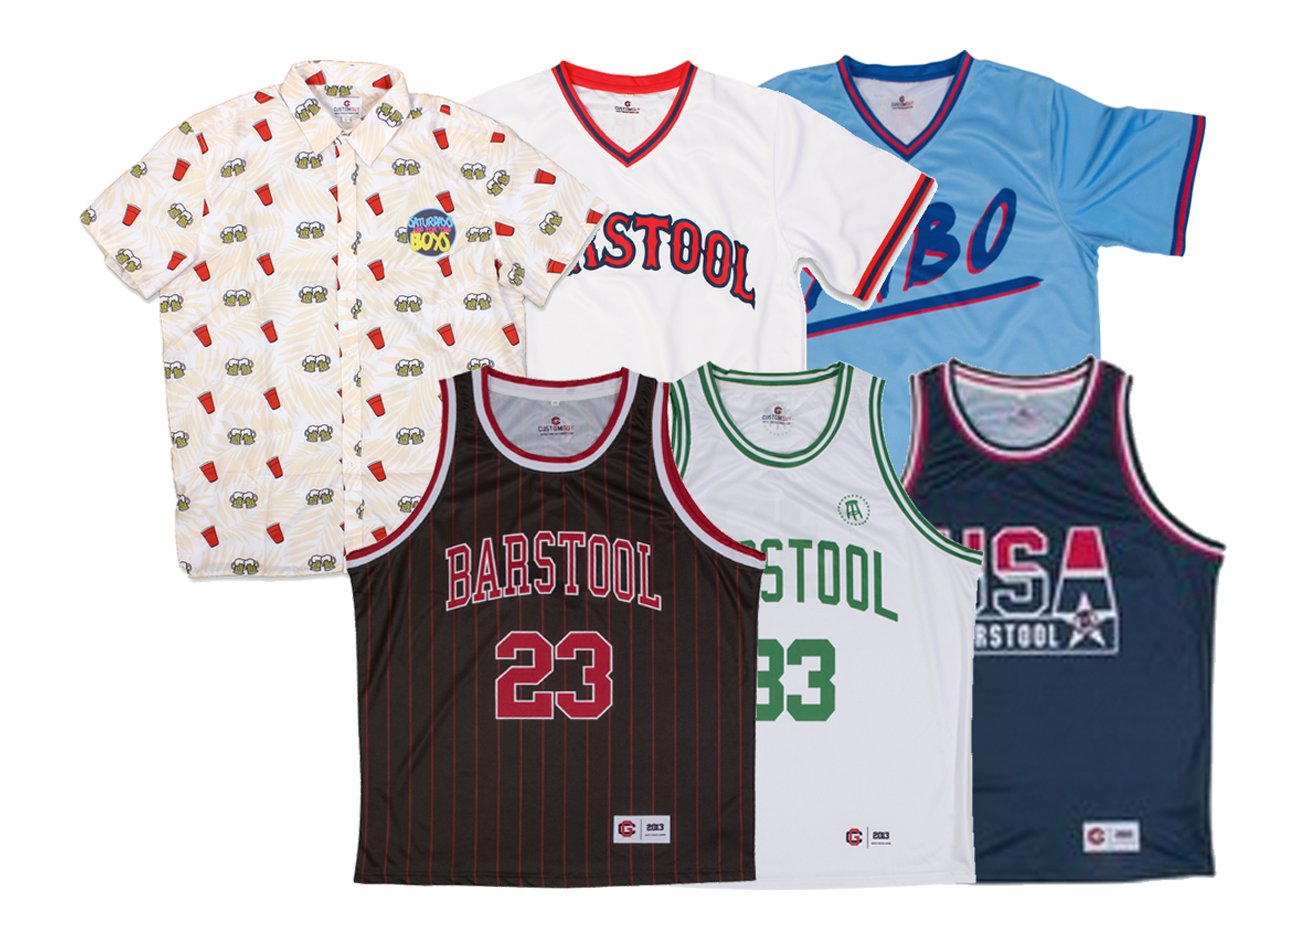 "Barstool Sports - The NYC based media company has an expanding e-commerce business that targets 13-30 year old sports fans. We collaborated to bring them ""bro"" style sports jerseys and Hawaiian shirts."